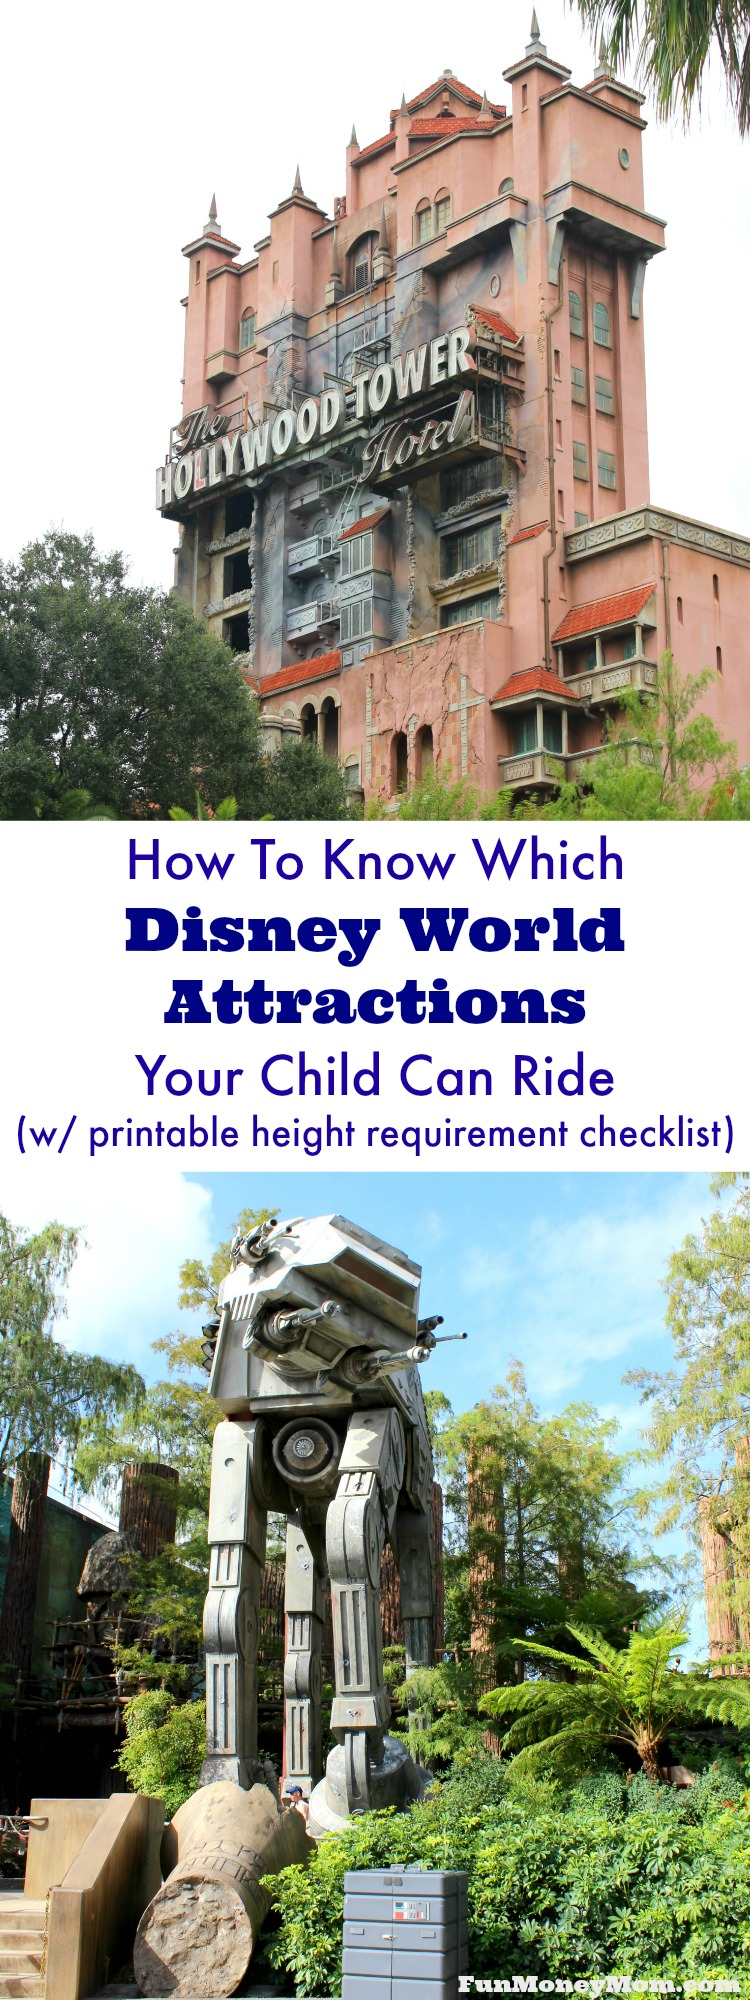 Planning a Disney vacation? Find out the height requirements before you go so that you'll know ahead of time which attractions your child can ride.